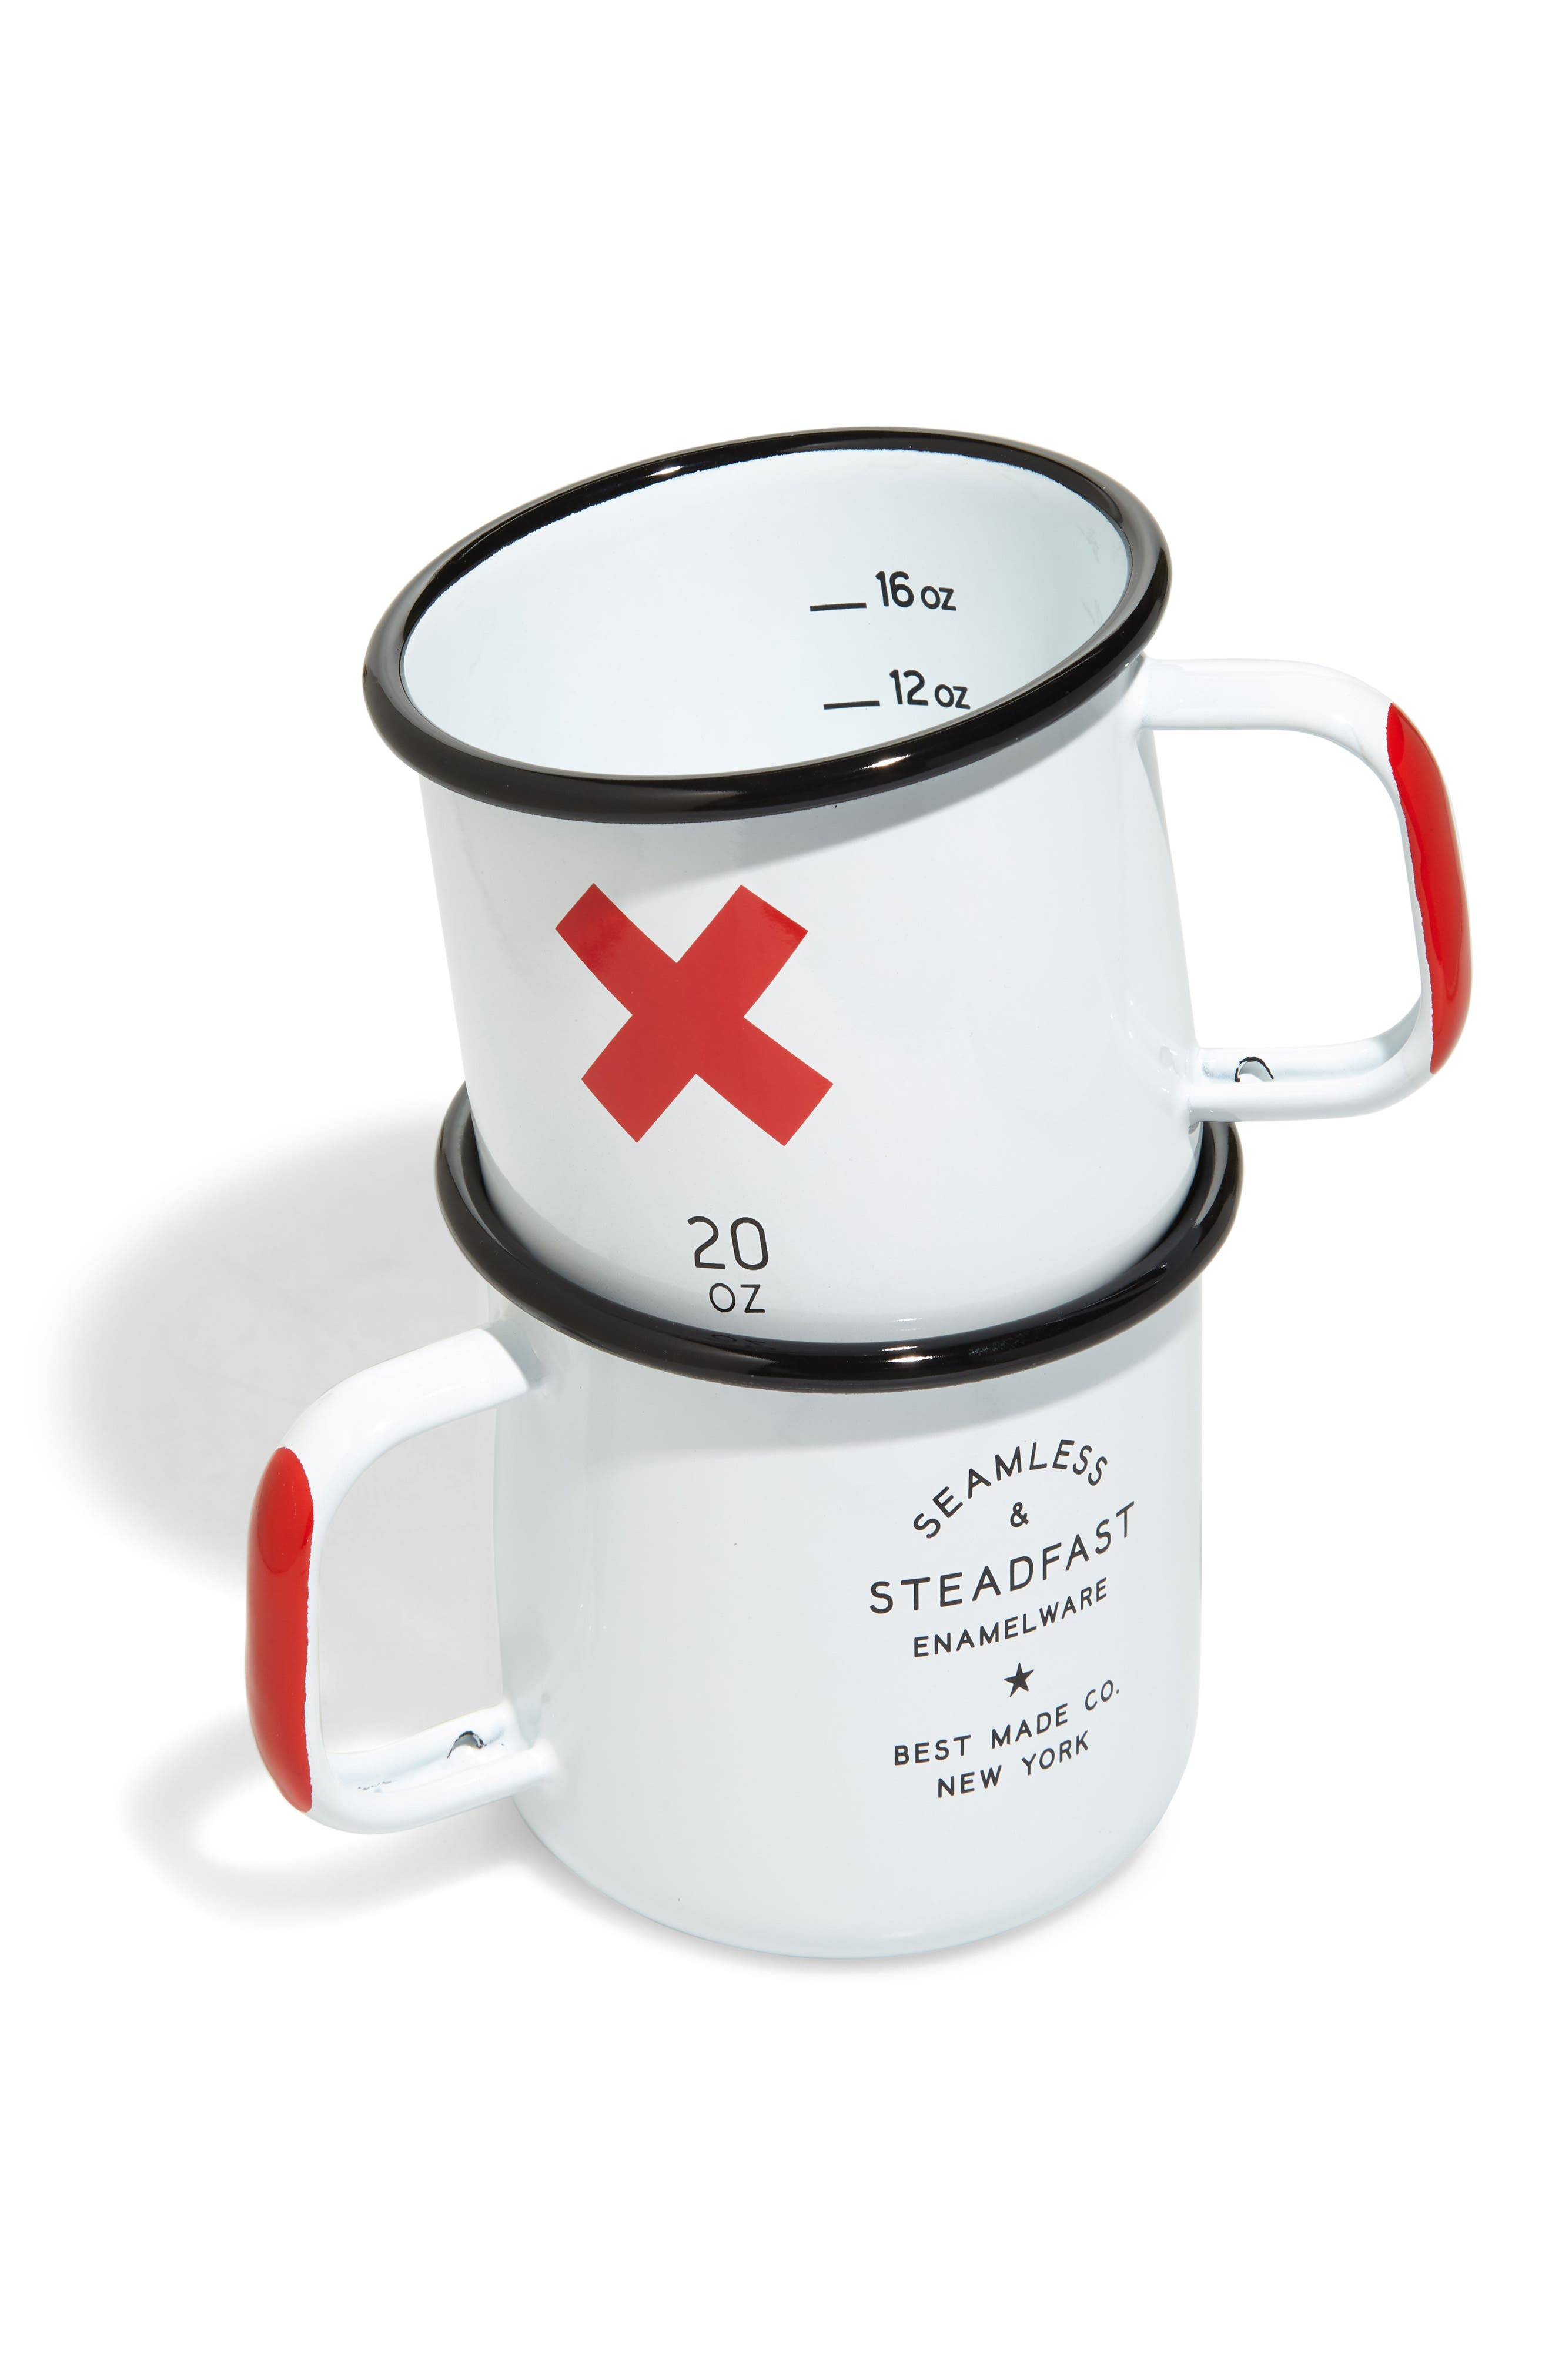 BEST MADE CO. Set of 2 Enameled Steel Mugs, Main, color, WHITE